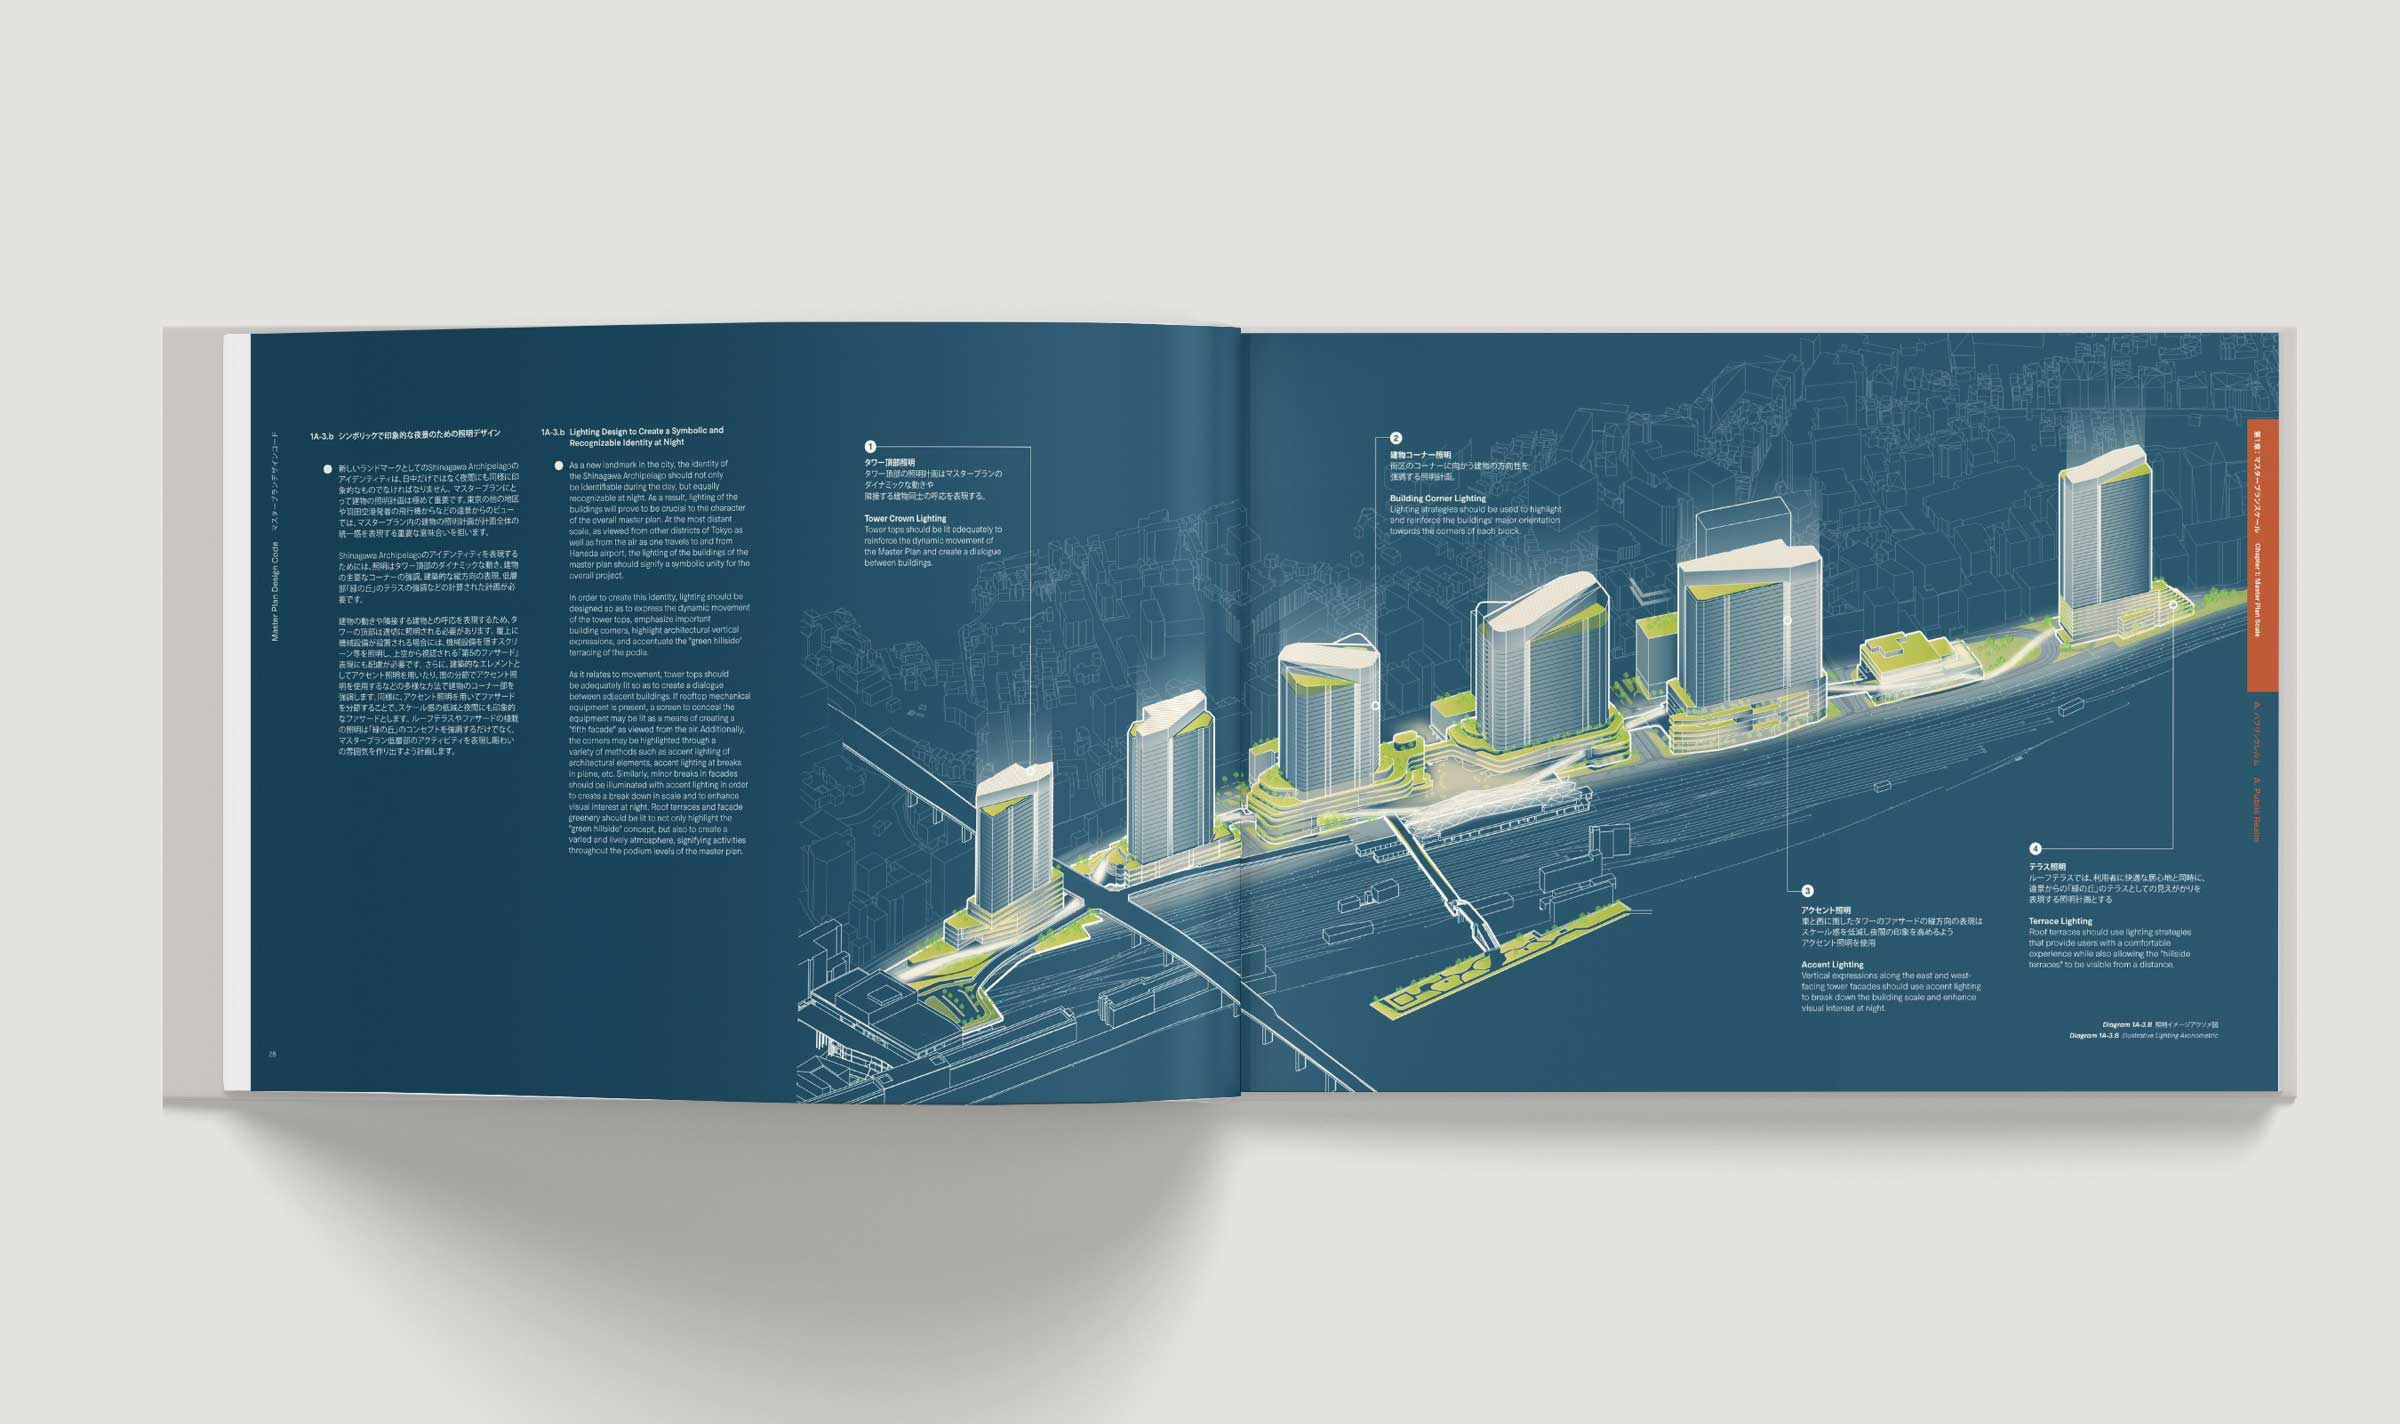 Open book showing a layout using the master plan axomometric to highlight lighting strategies for the master plan. The diagram uses white lines on a deep blue background.